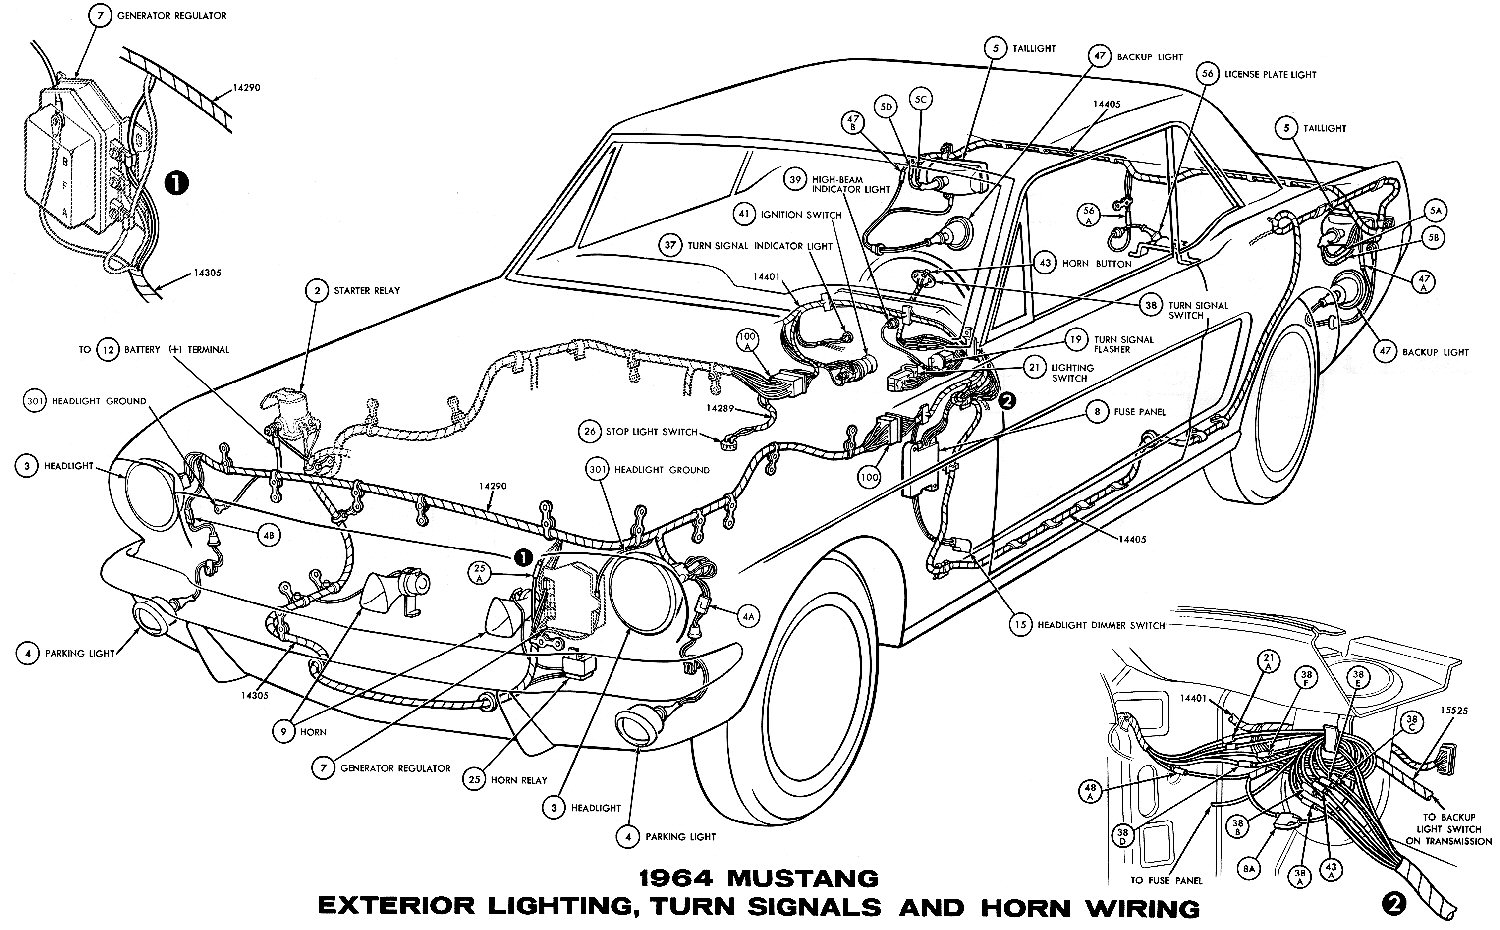 [WRG-8679] 1964 1 2 Ford Mustang Wiring Diagrams